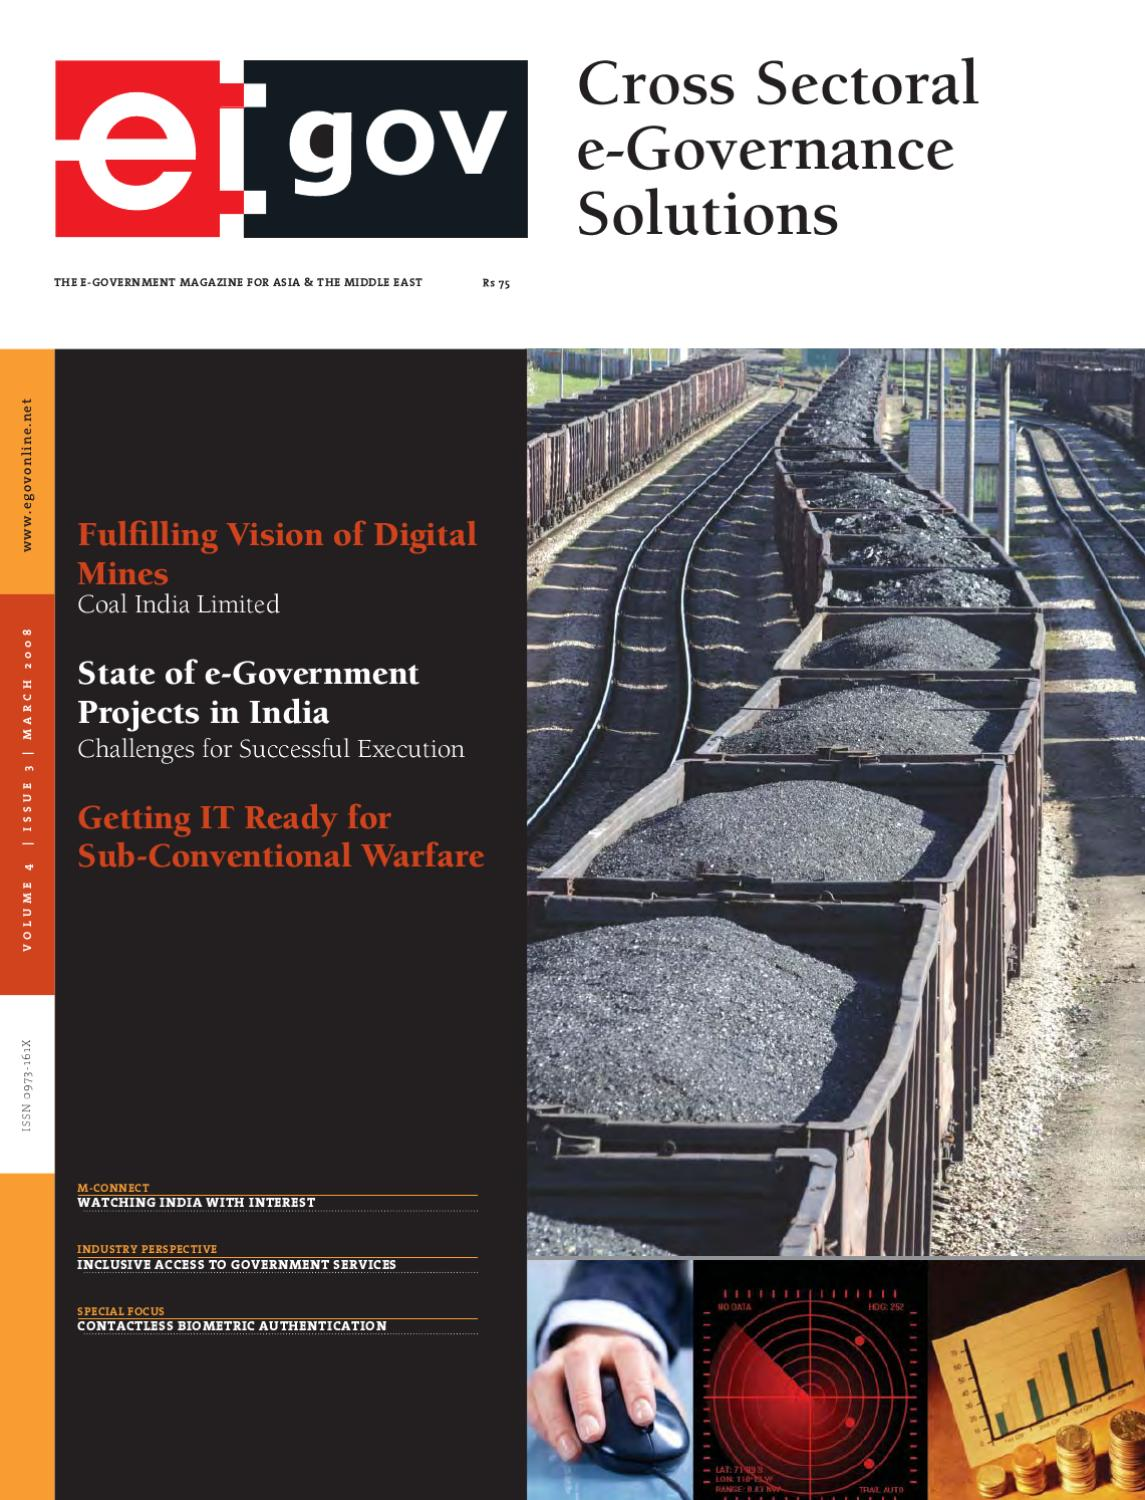 e governance in india perspectives challenges Around the world, governments and public sector organizations are facing to  reform their public administration organizations and deliver more efficient and  cost.